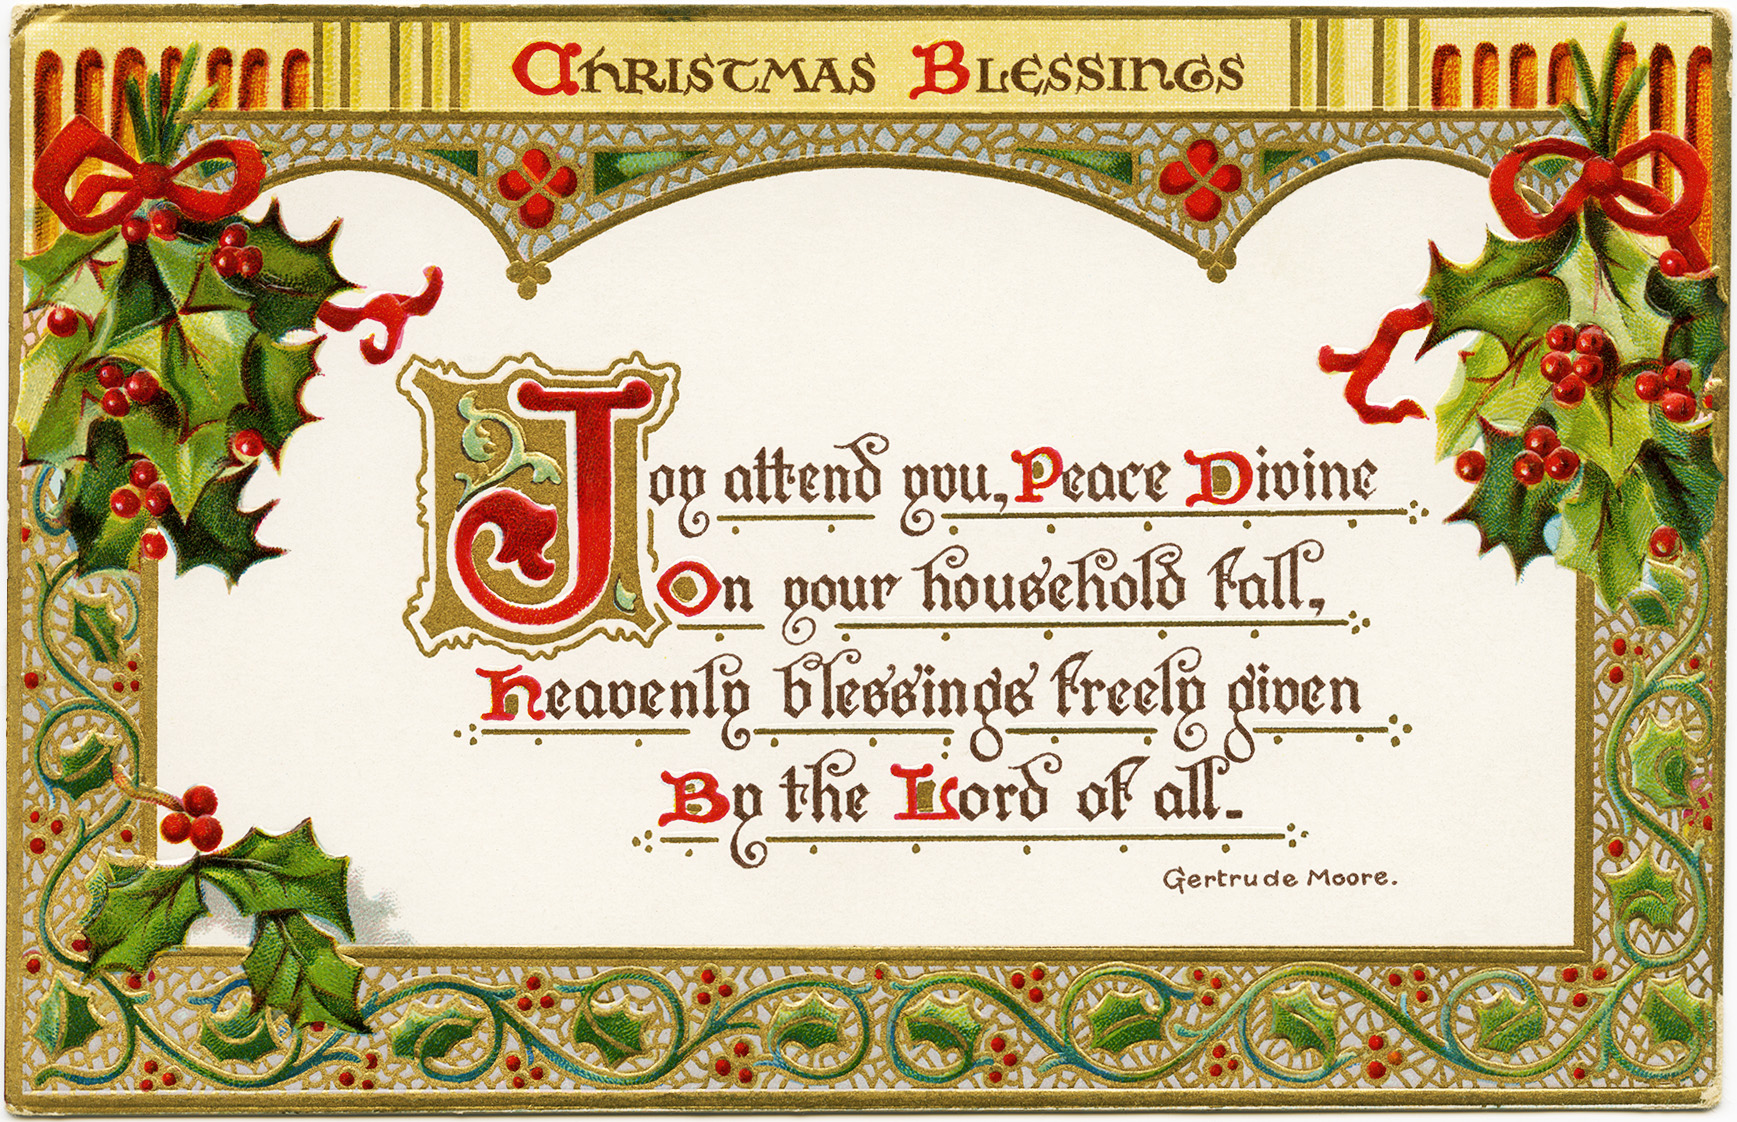 Christmas Blessings Free Vintage Postcard Graphic